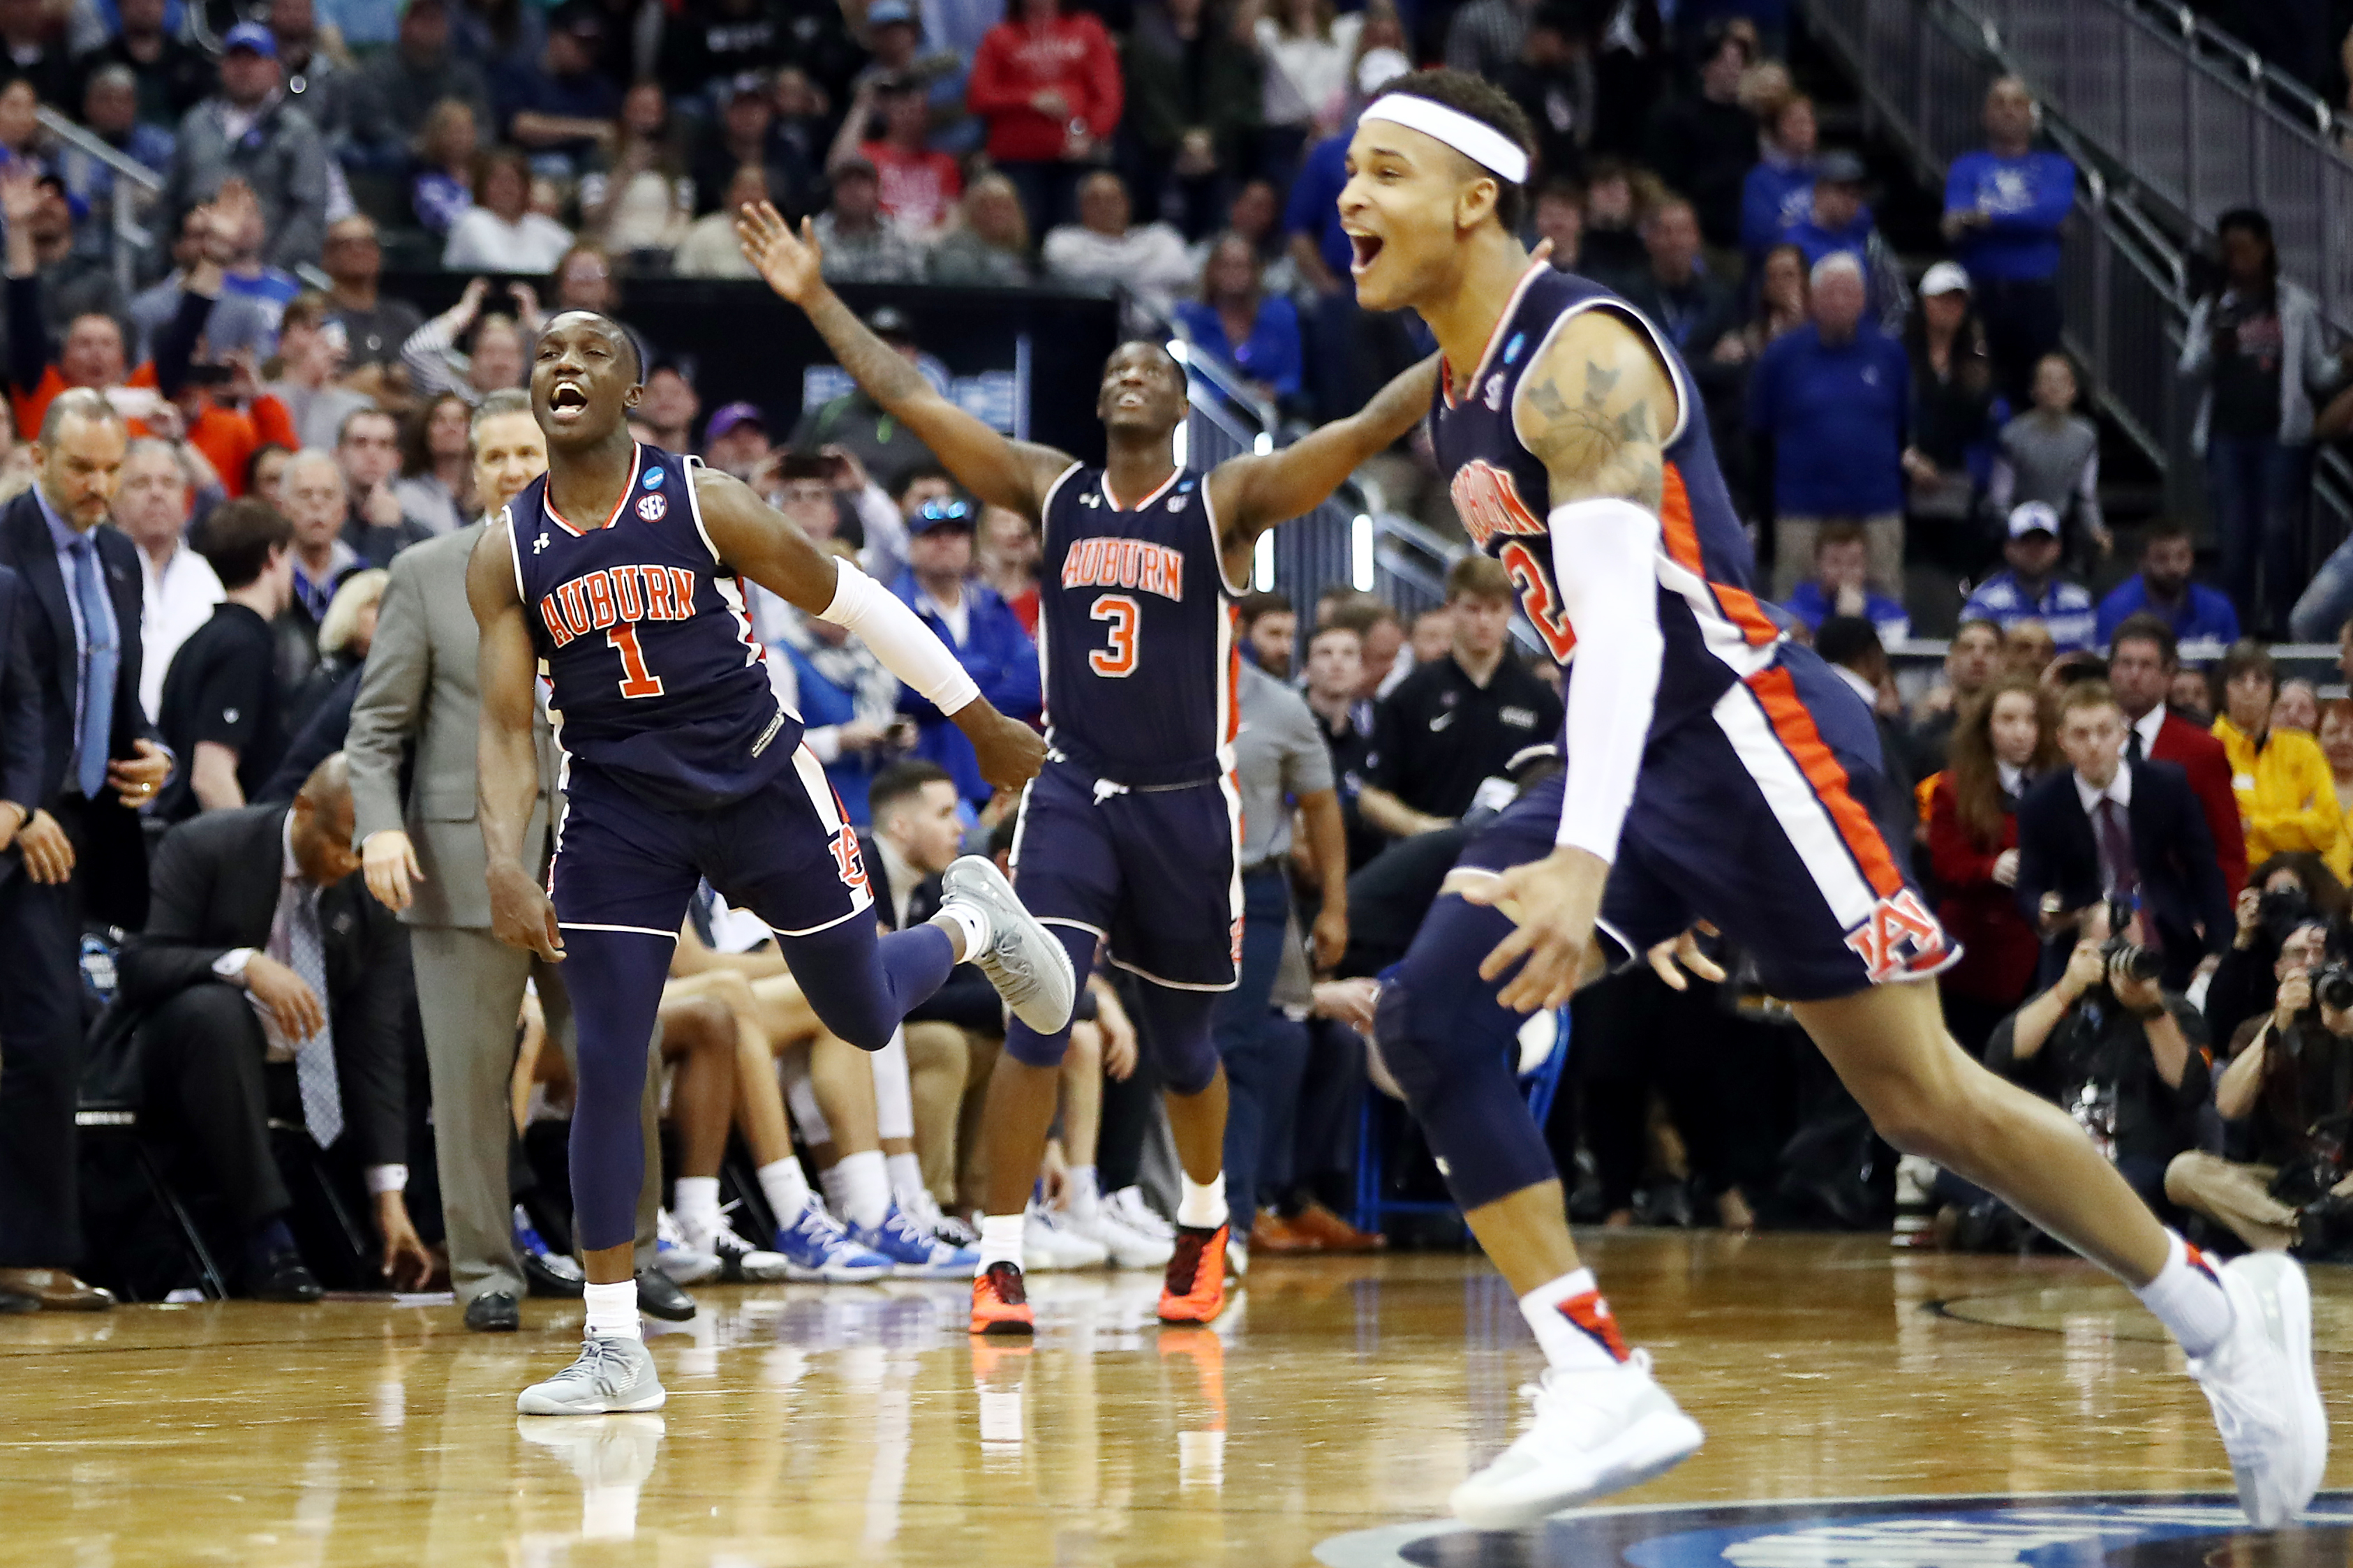 Kentucky Auburn Tigers Win In Ot To Reach First Final Four